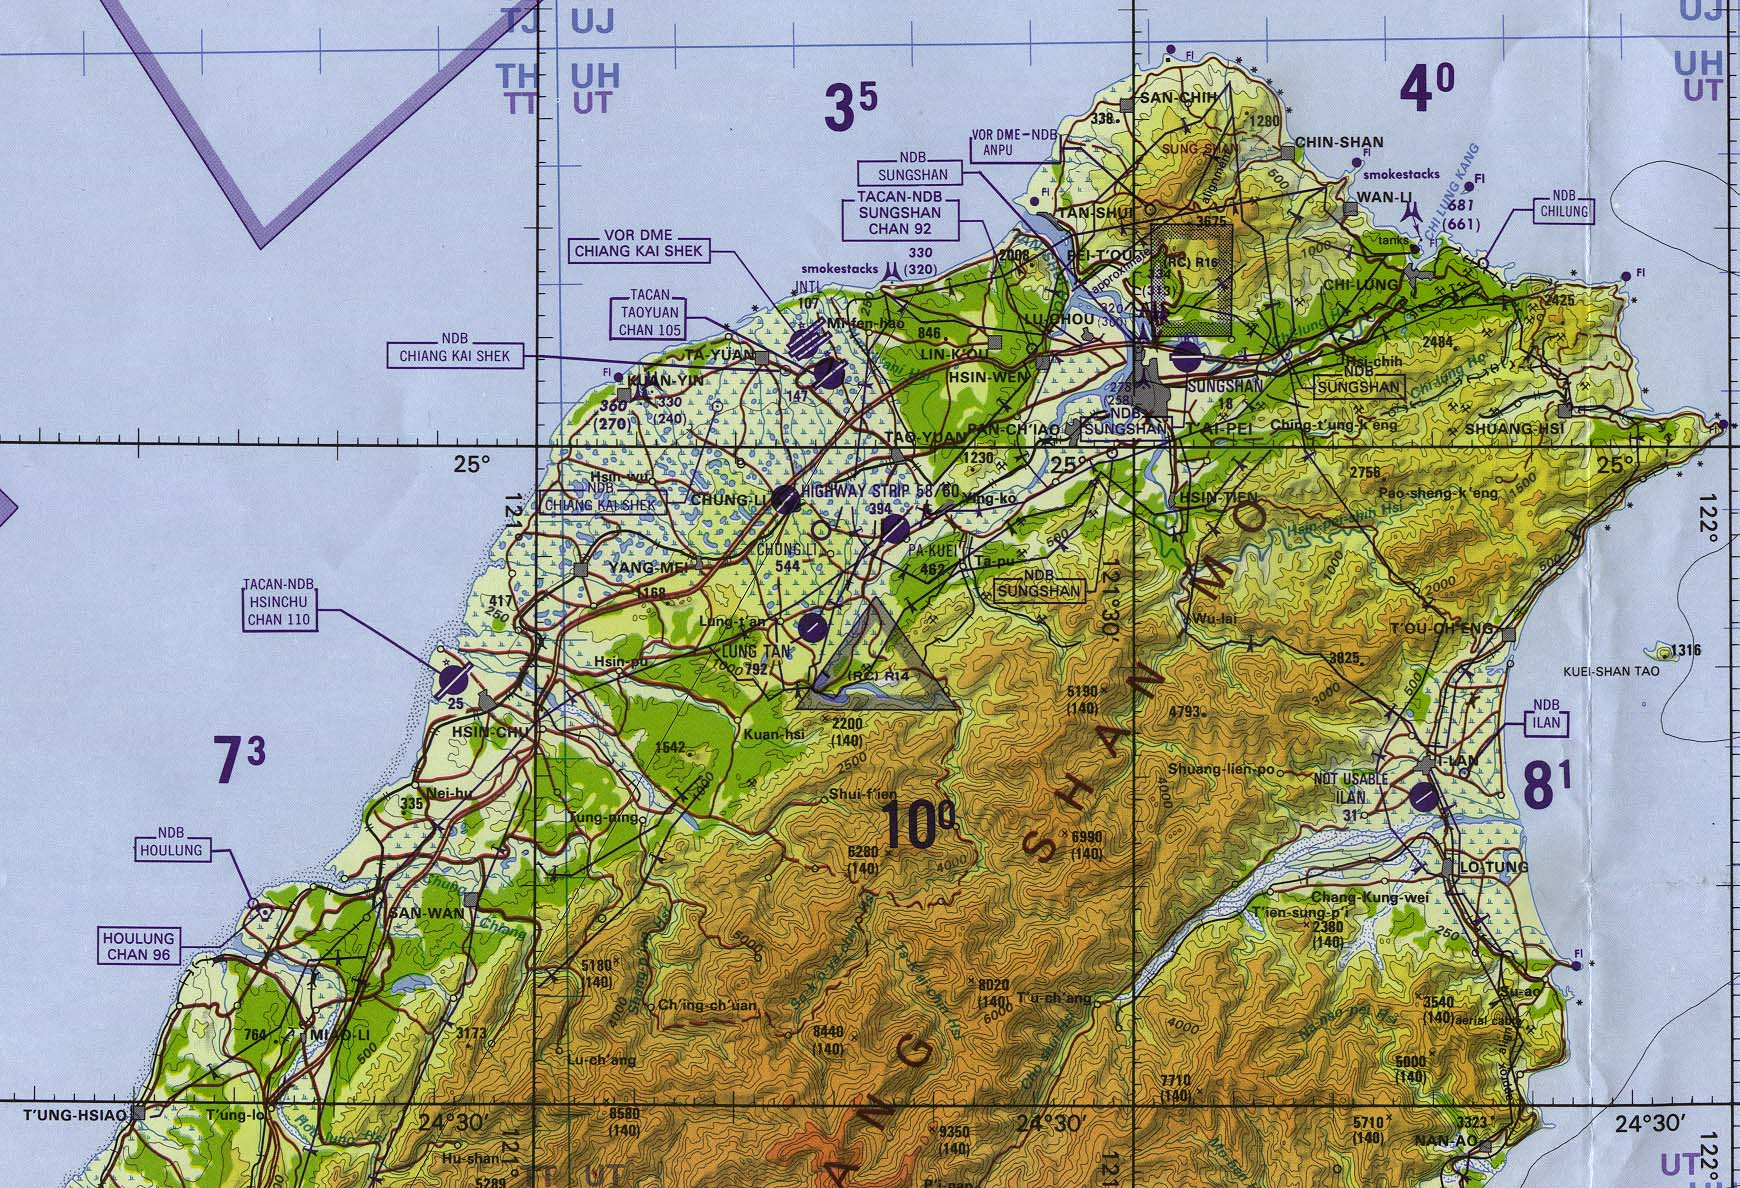 Northern Taiwan Tactical Pilotage Chart